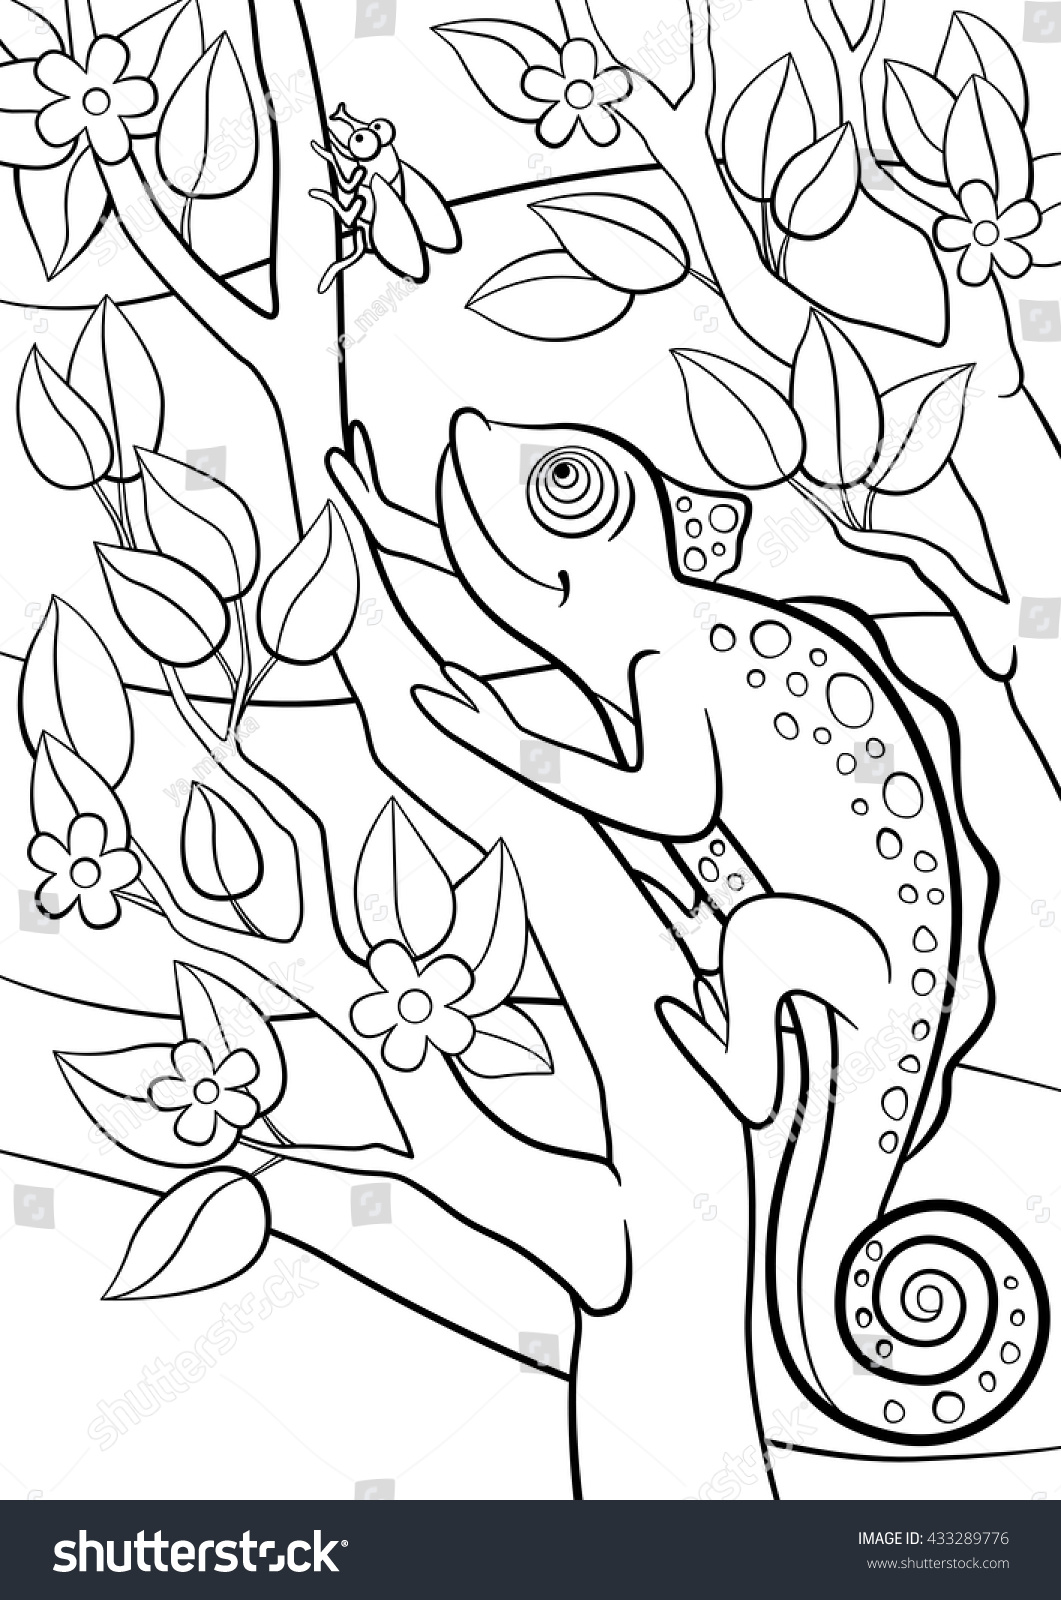 Coloring pictures wild animals - Coloring Pages Wild Animals Little Cute Chameleon Sits On The Tree Branch And Looks